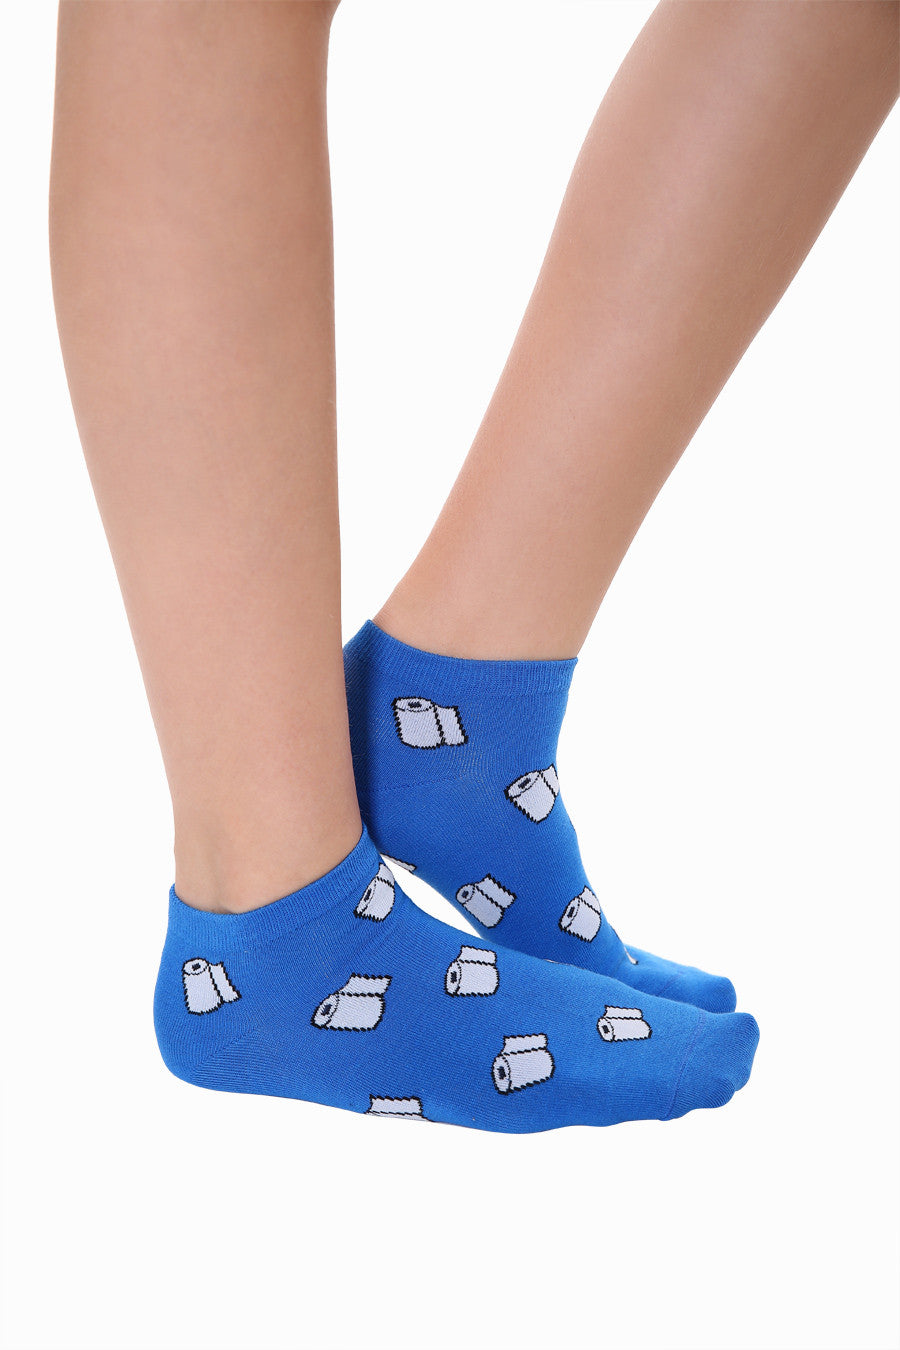 Toilet Paper Socks